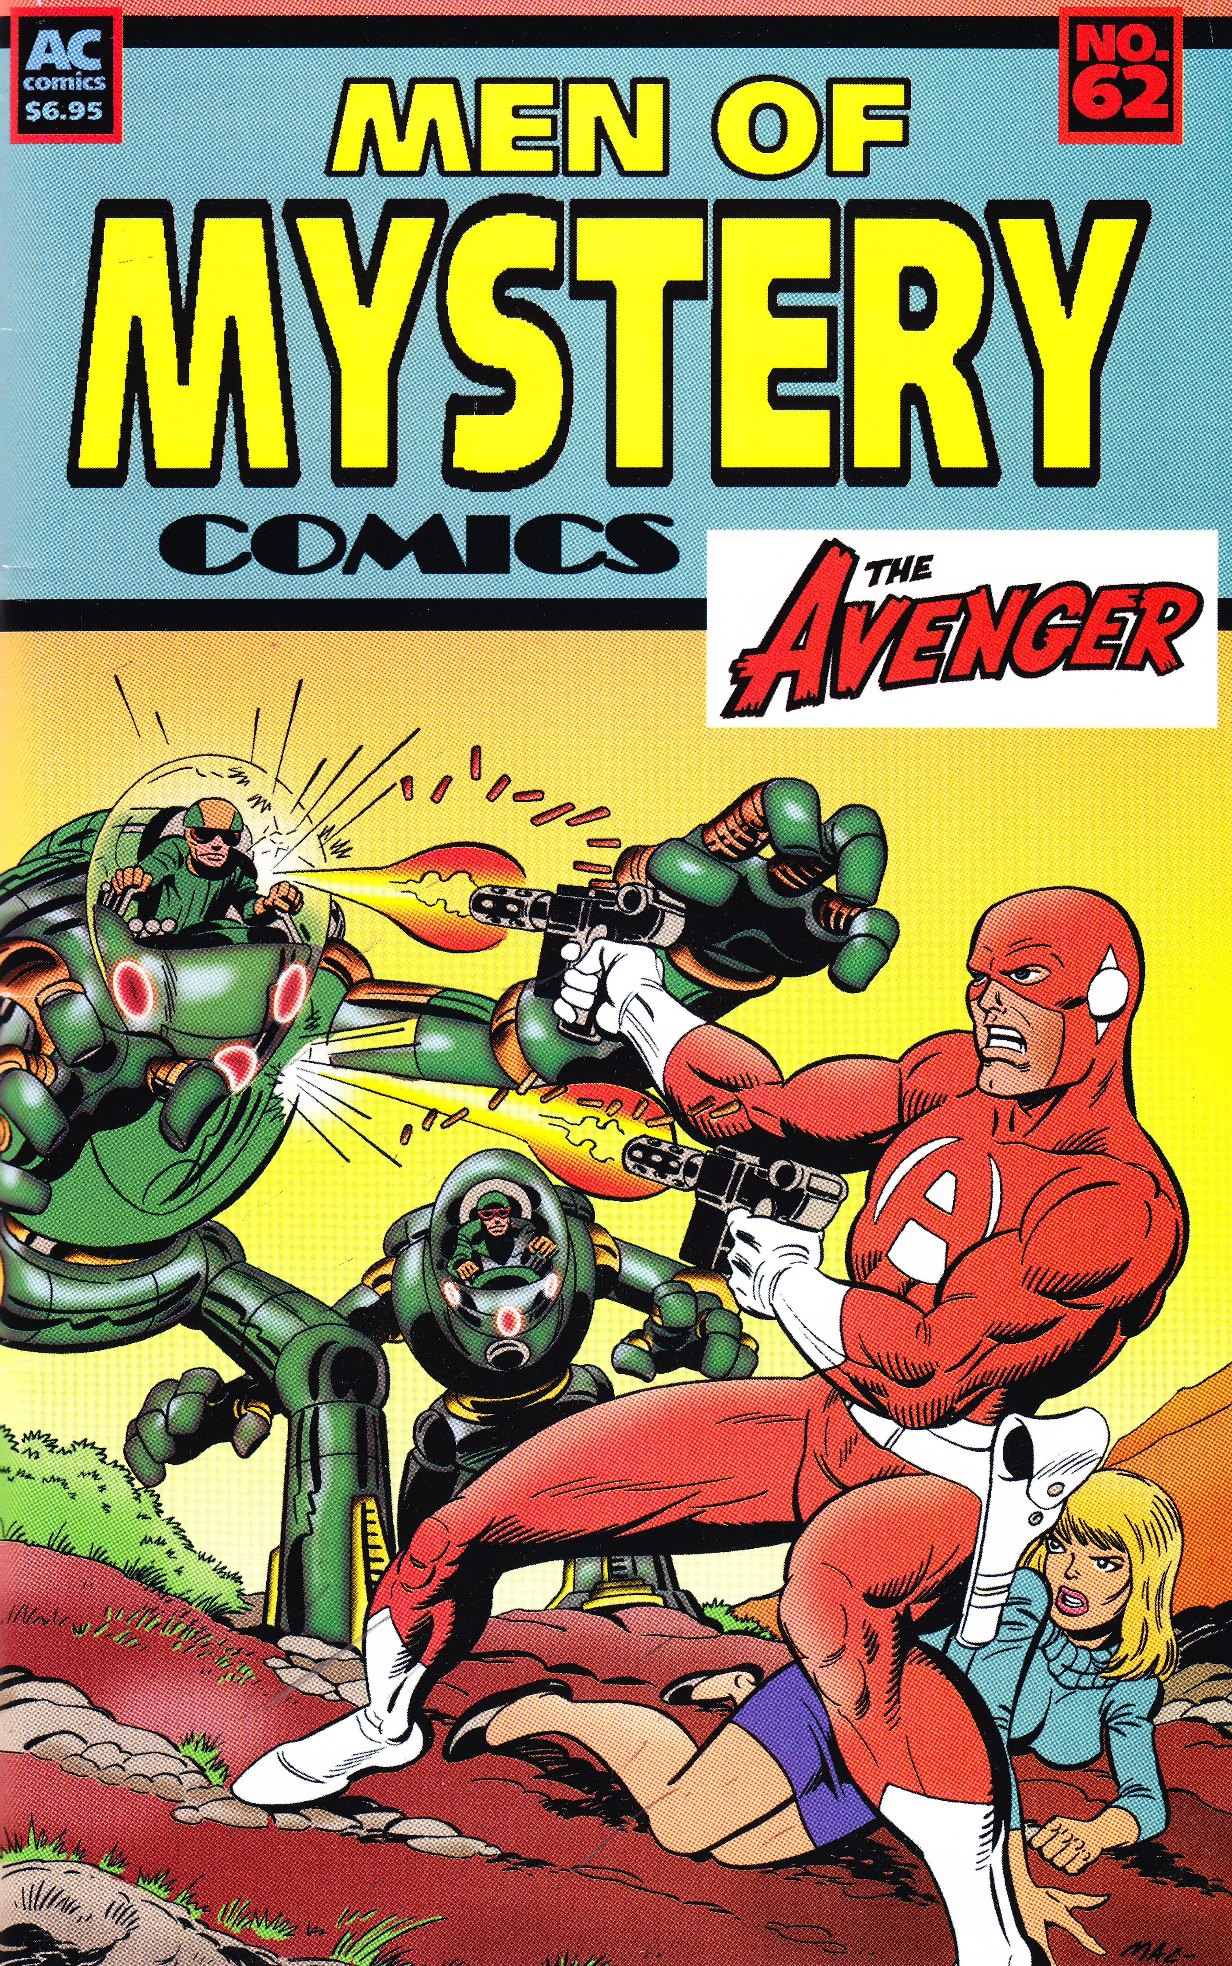 Read online Men of Mystery Comics comic -  Issue #62 - 1